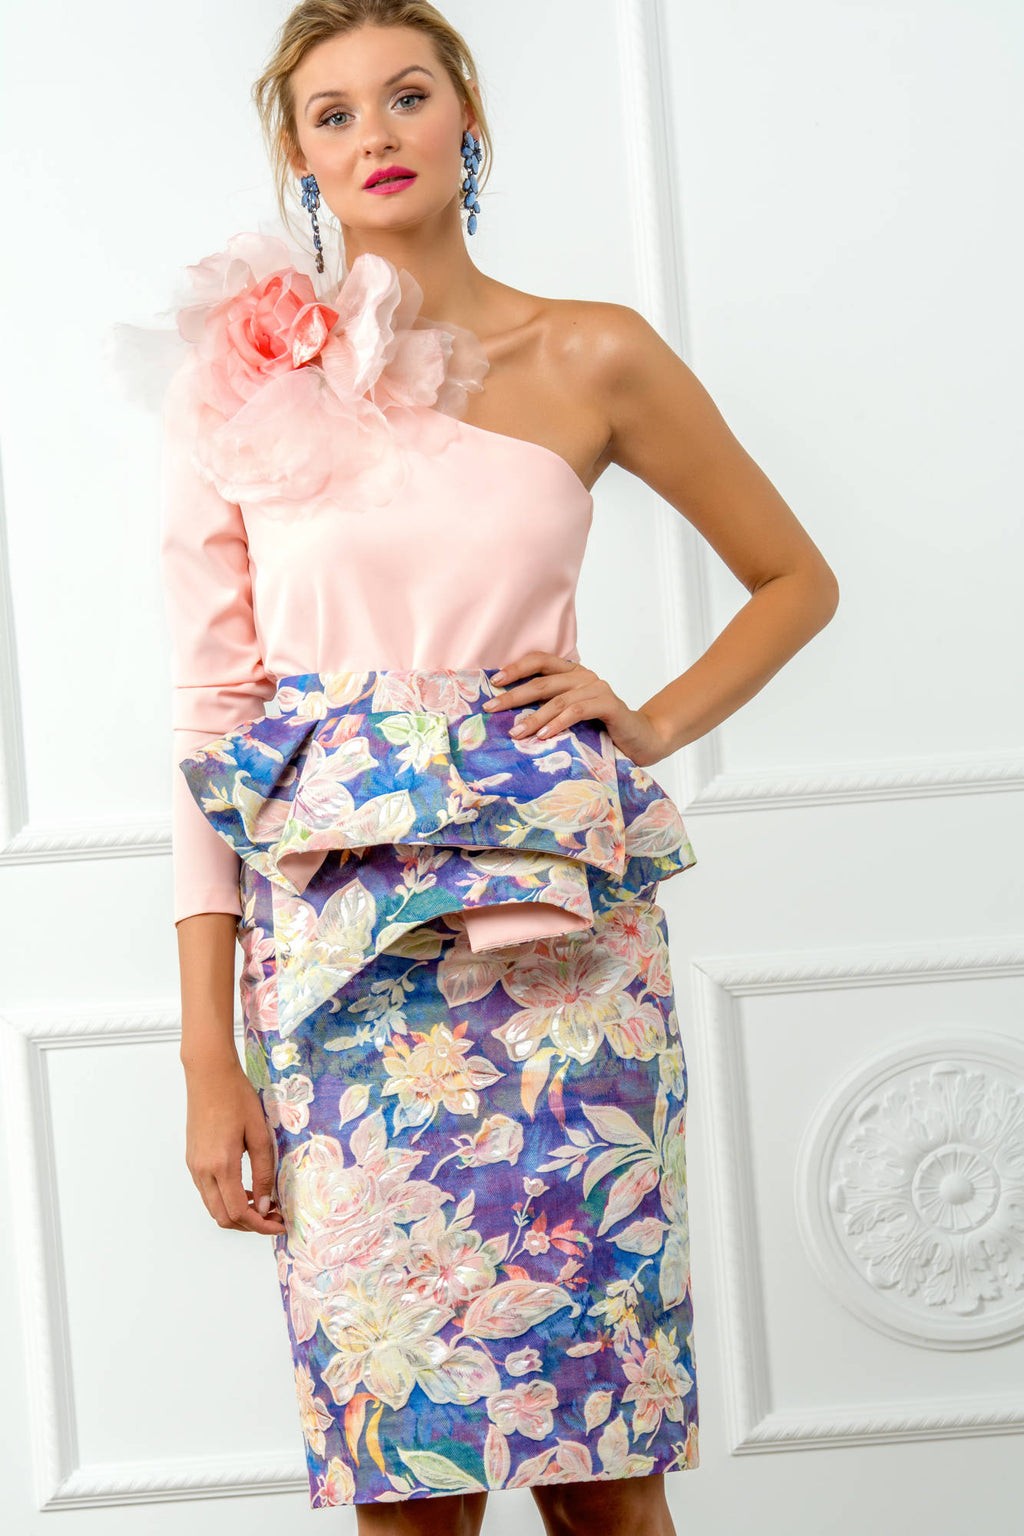 Pencil skirt with large asymmetric ruffle at the waist in blue brocade fabric with coral pink flowers.